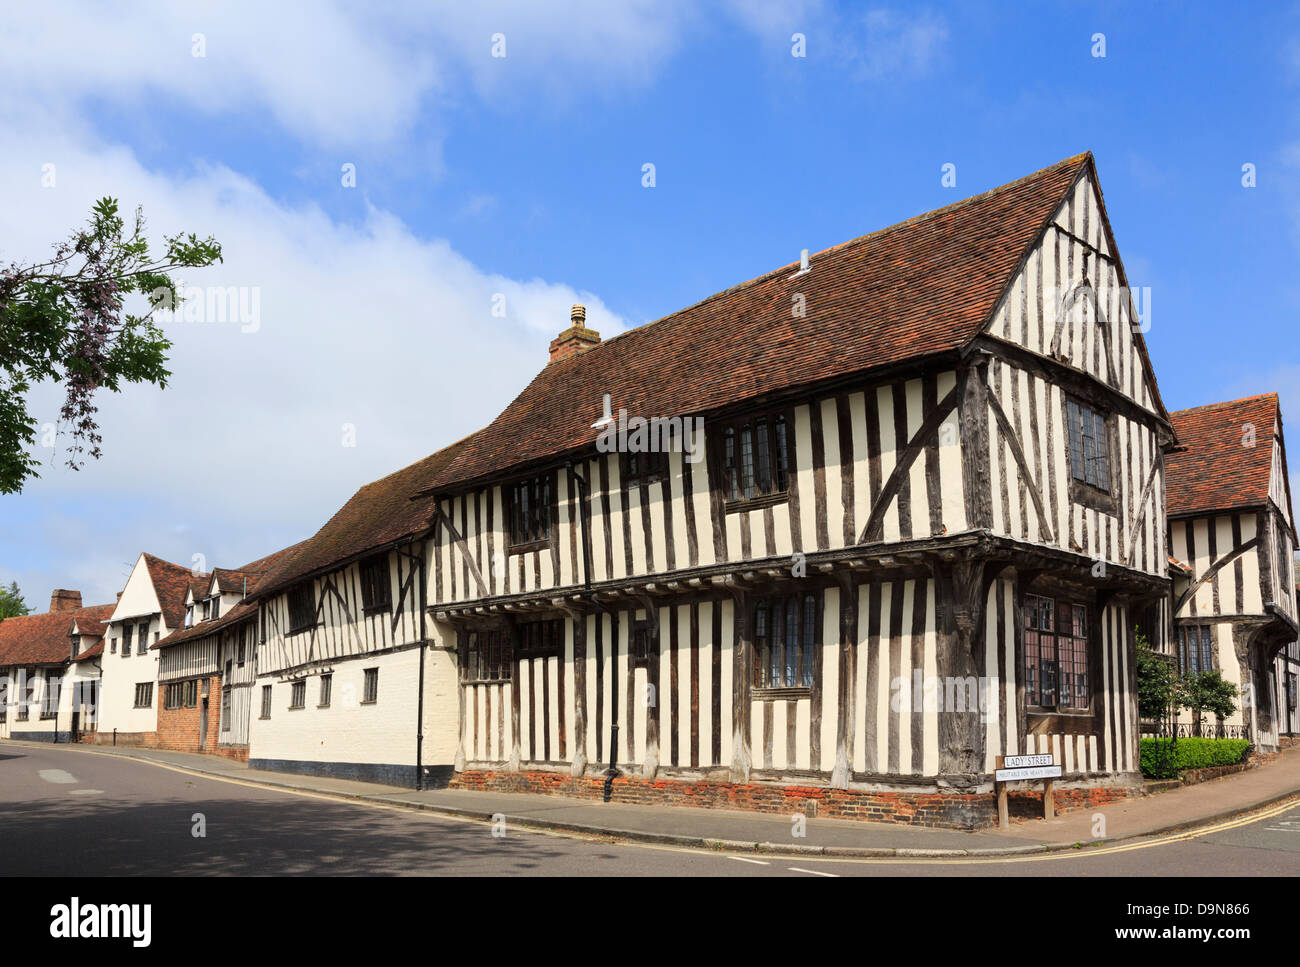 15th century timbered Wool Hall of the Guild of our Lady now part of Swan Hotel in medieval village Lavenham Suffolk - Stock Image